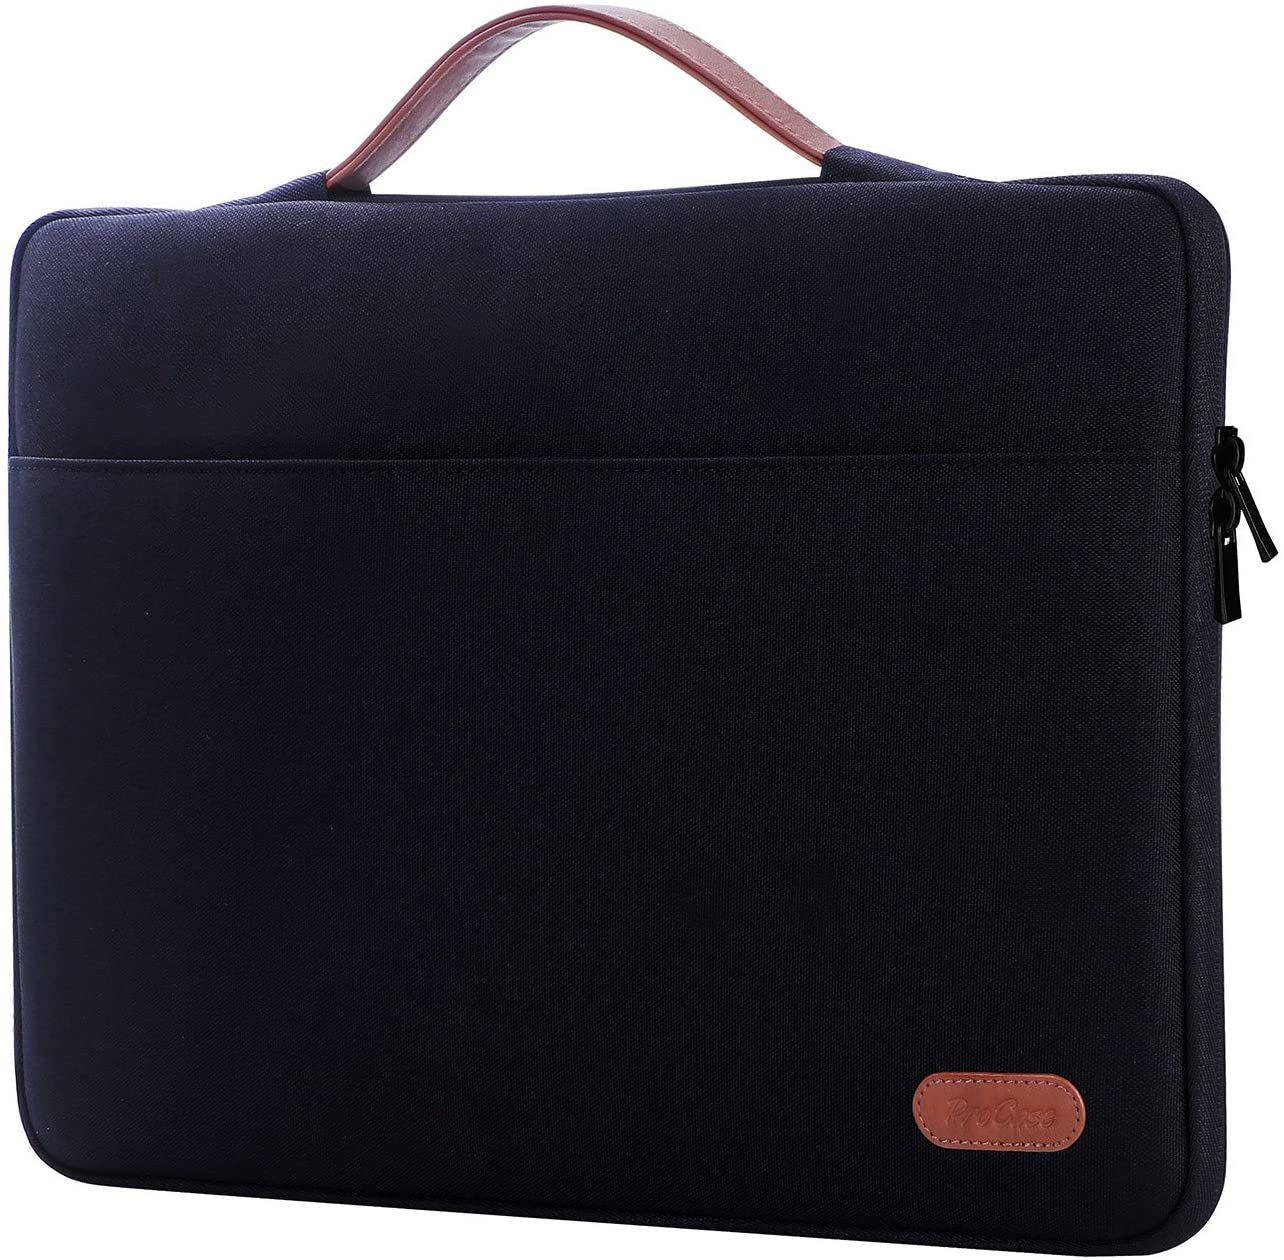 ProCase 14-15.6 Inch Laptop Sleeve Case Protective Bag, Ultrabook Notebook Carrying Case Handbag for MacBook Pro 16